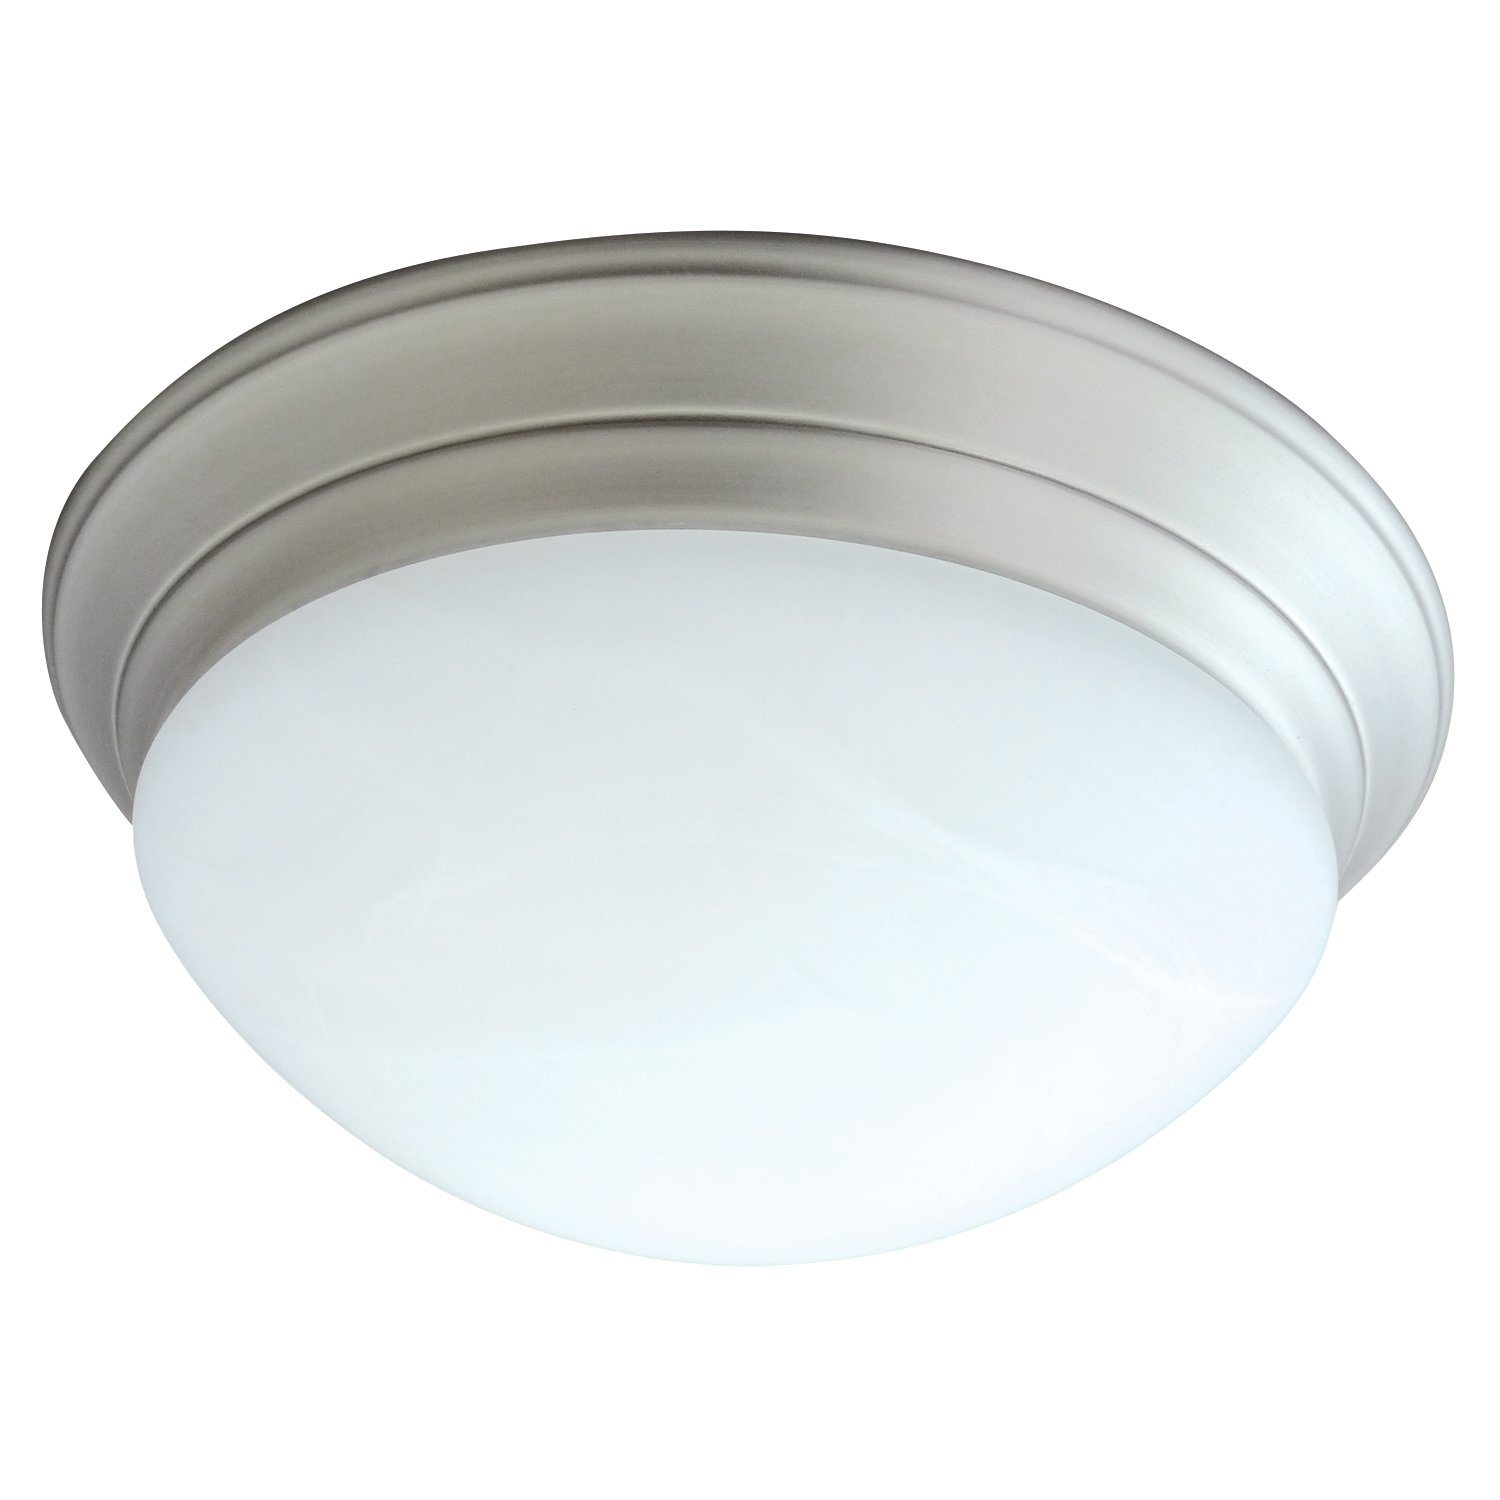 "Lights of America 14"" Dimmable 72 LEDs Ceiling Light Warm White"